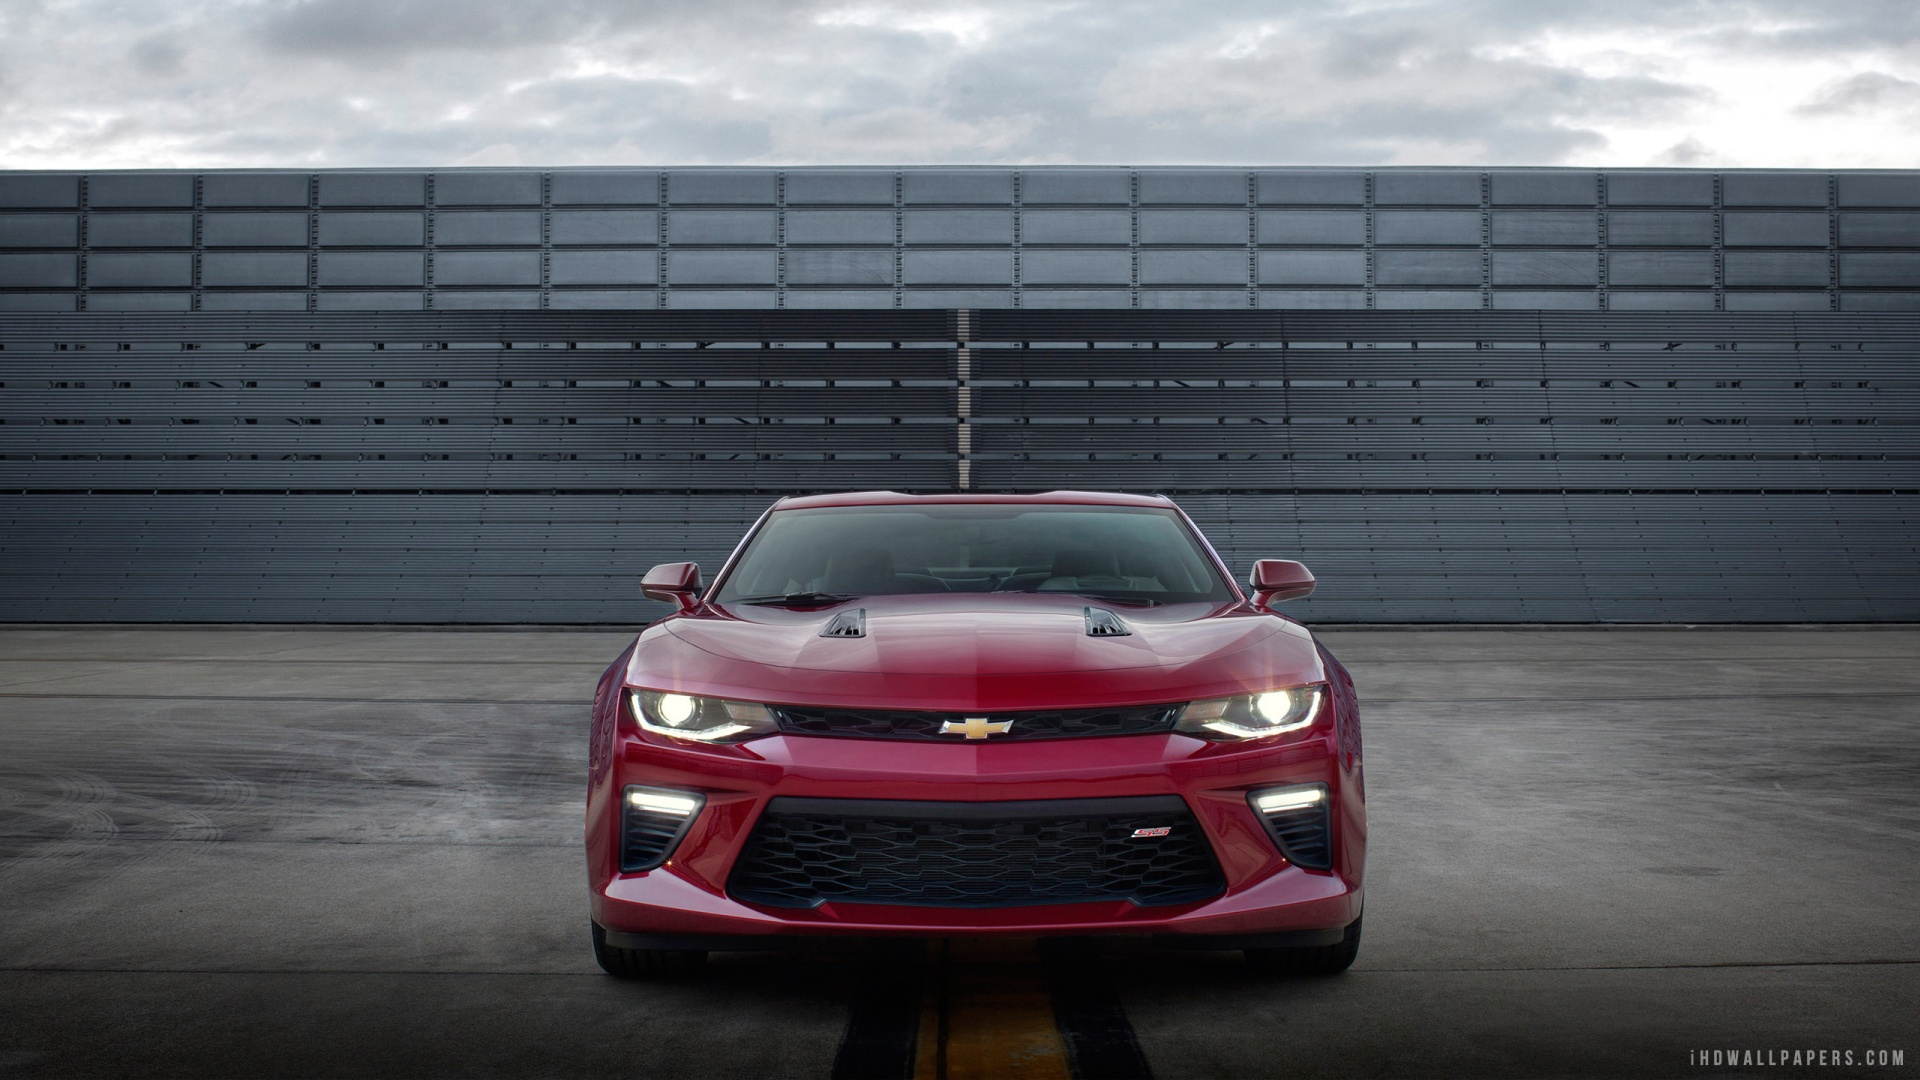 2016 Chevrolet Camaro Front HD Wallpaper   iHD Wallpapers 1920x1080